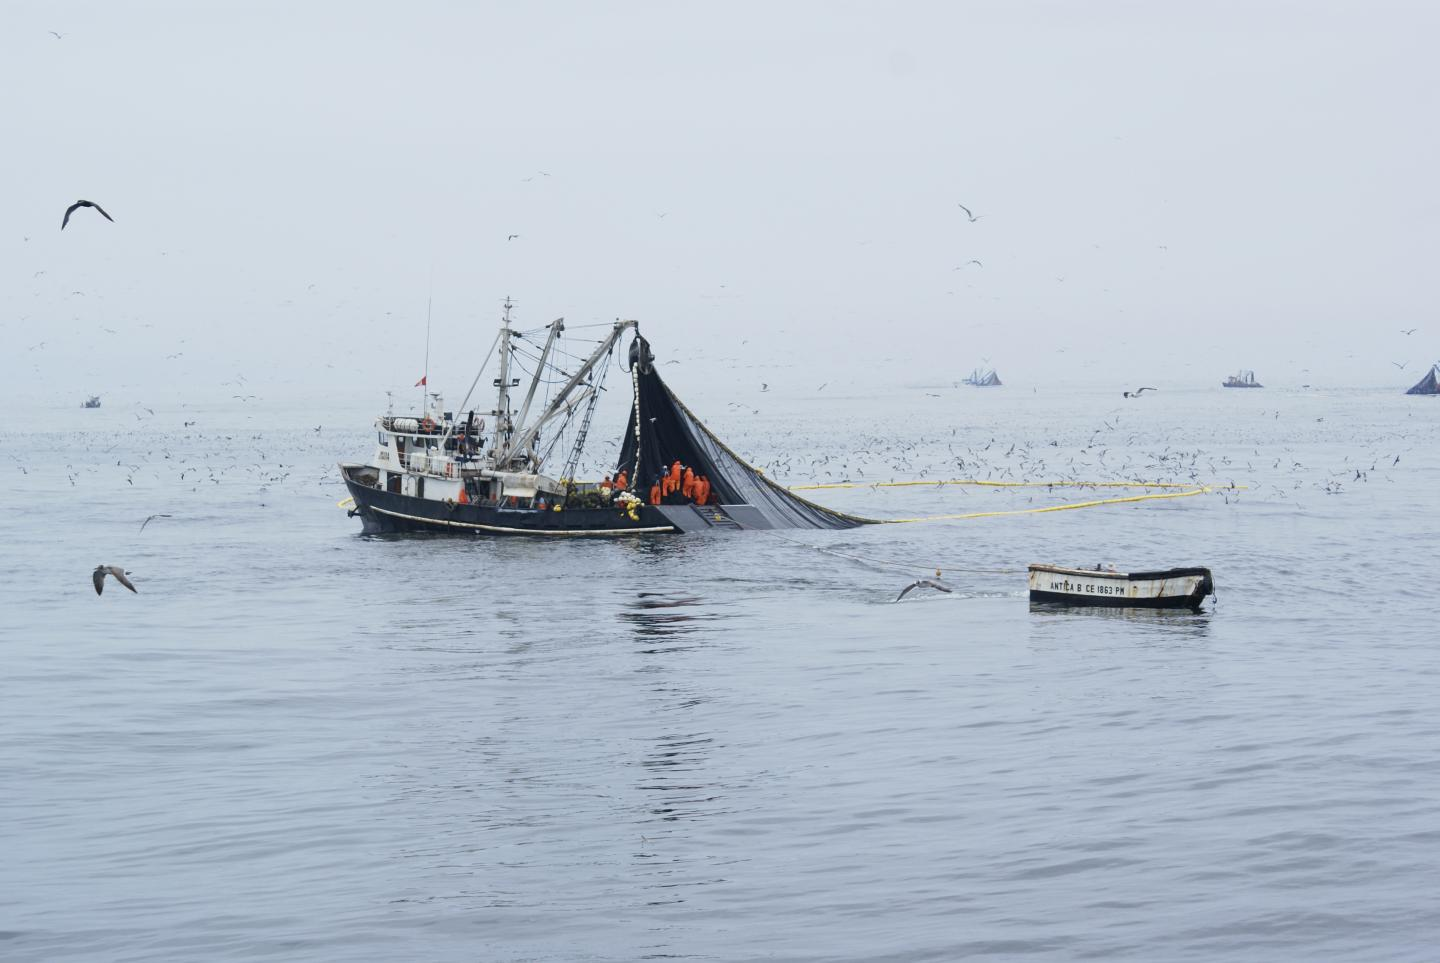 Peruvian Industrial Purse Seiners in Full Activity of Anchovy Fishing